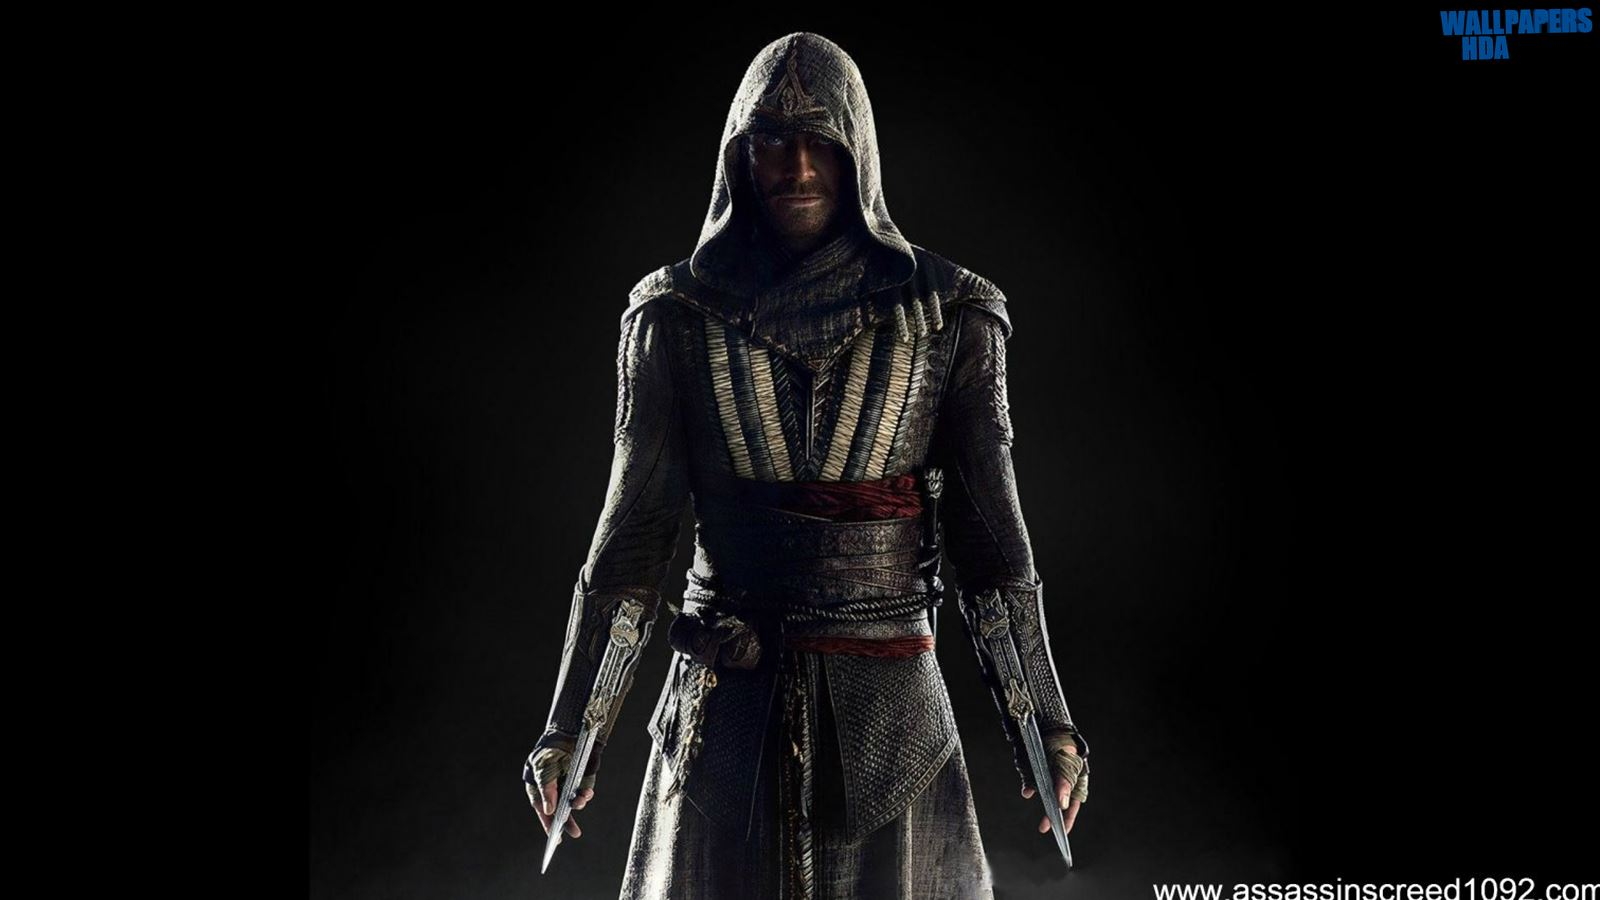 ... Wallpapers Fullscreen Widescreen Assassins creed movie wallpaper 1600